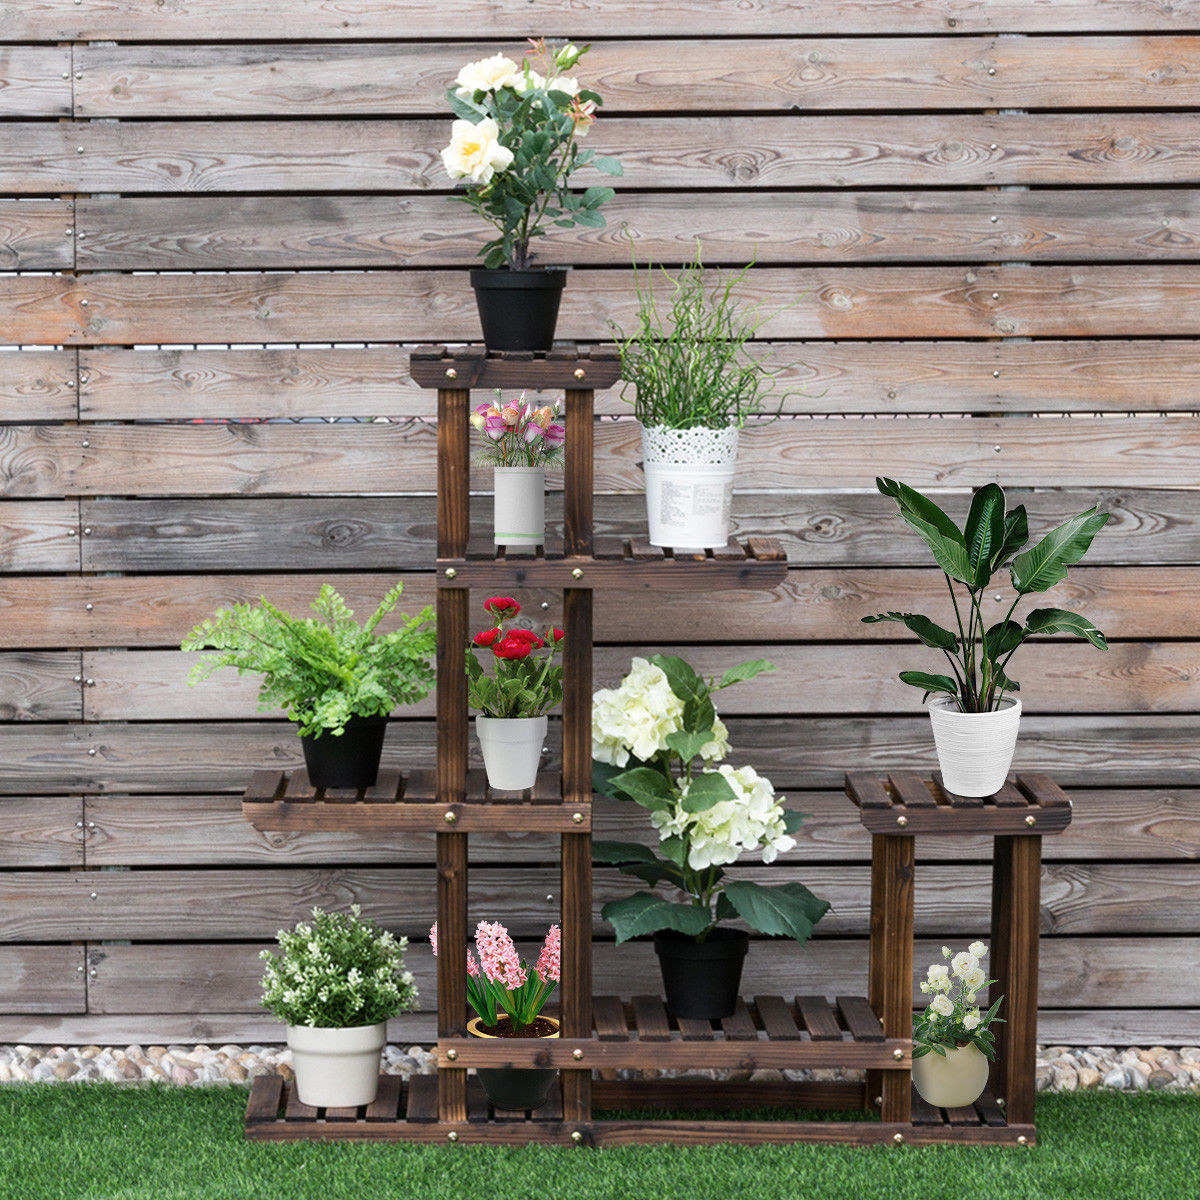 The Costway Outdoor Wooden Flower Plant Stand with flower pots on every of its six shelves